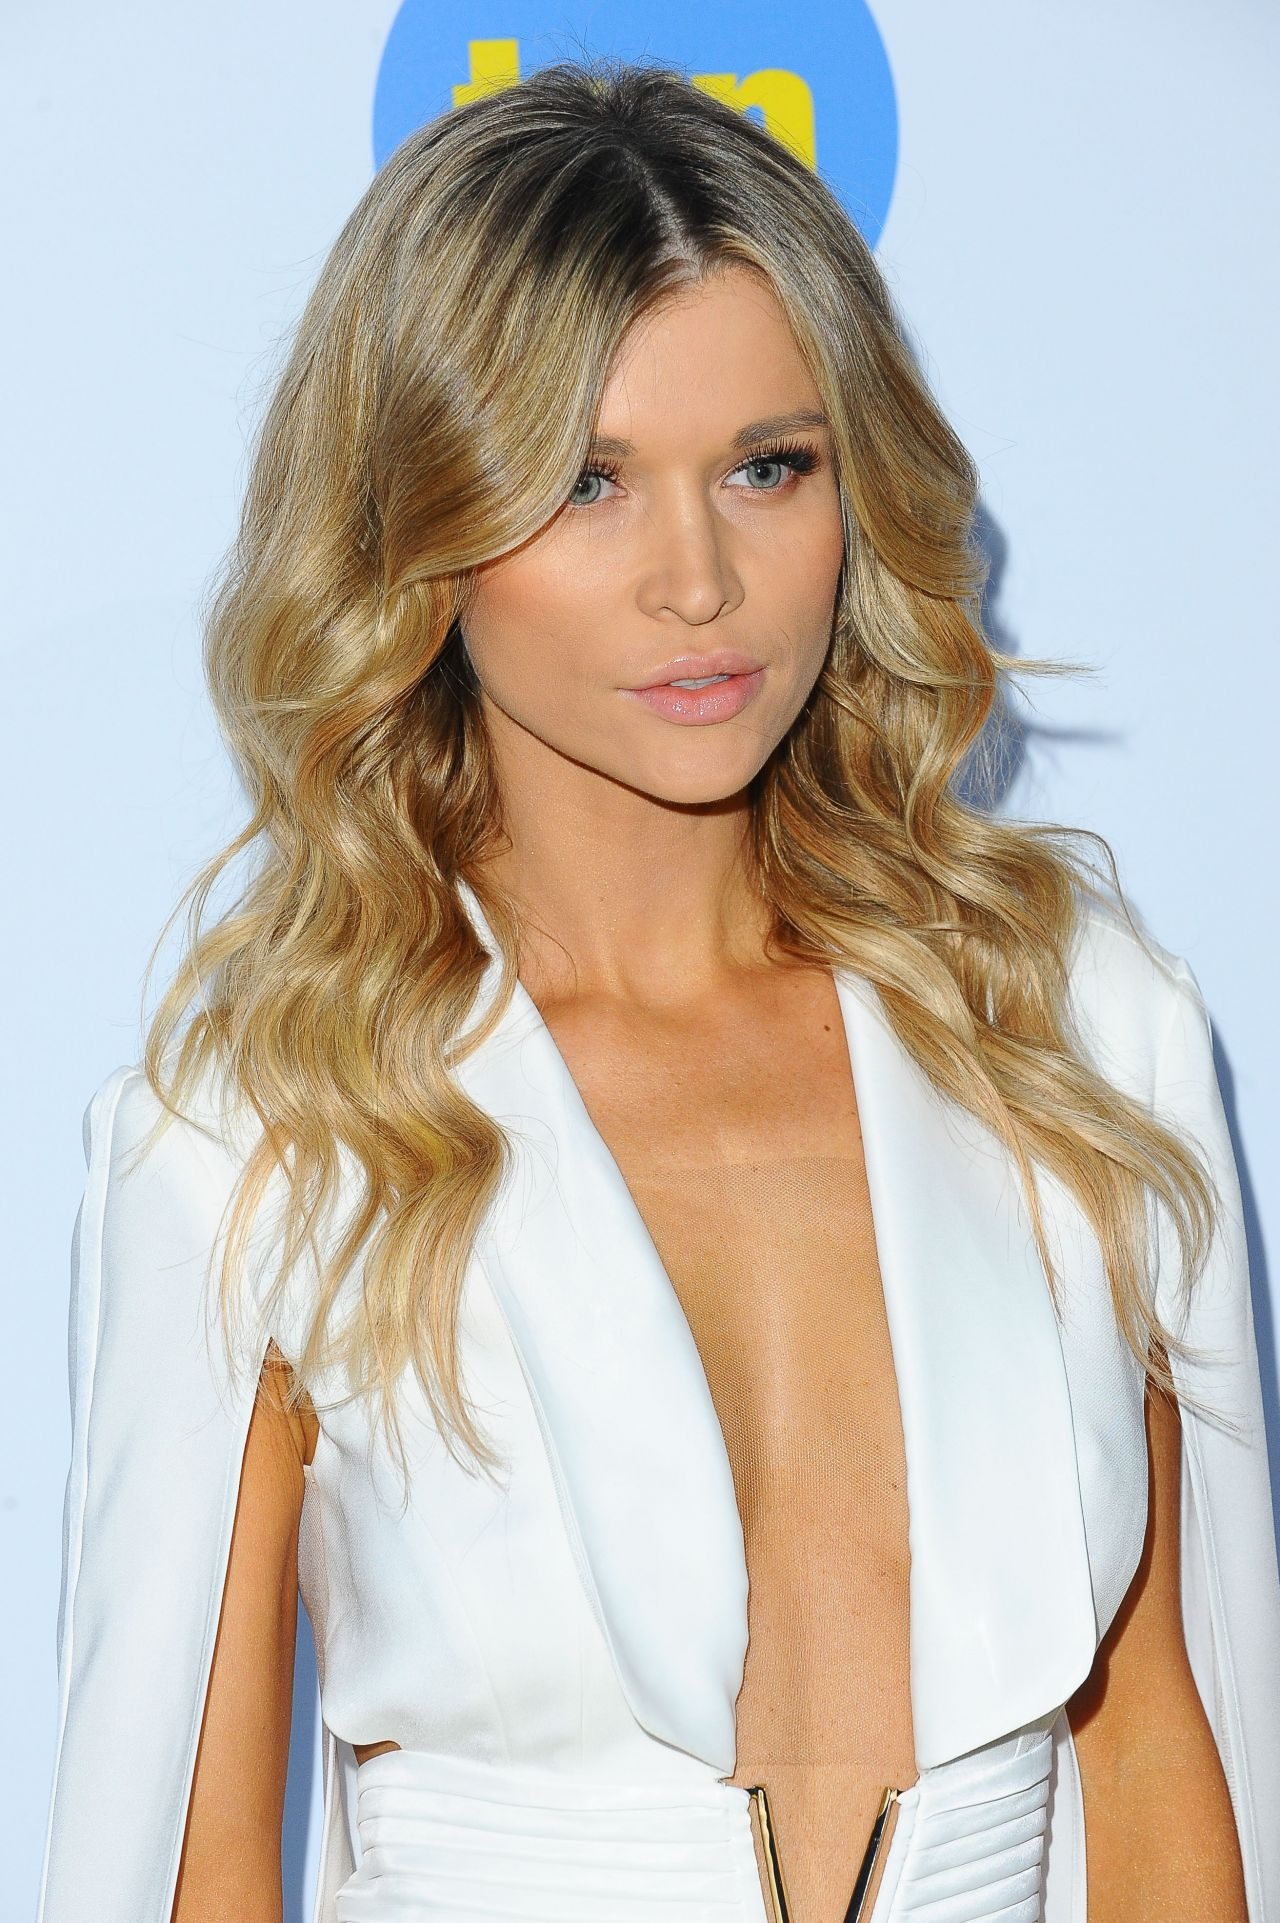 Joanna Krupa naked (68 foto) Hacked, YouTube, see through